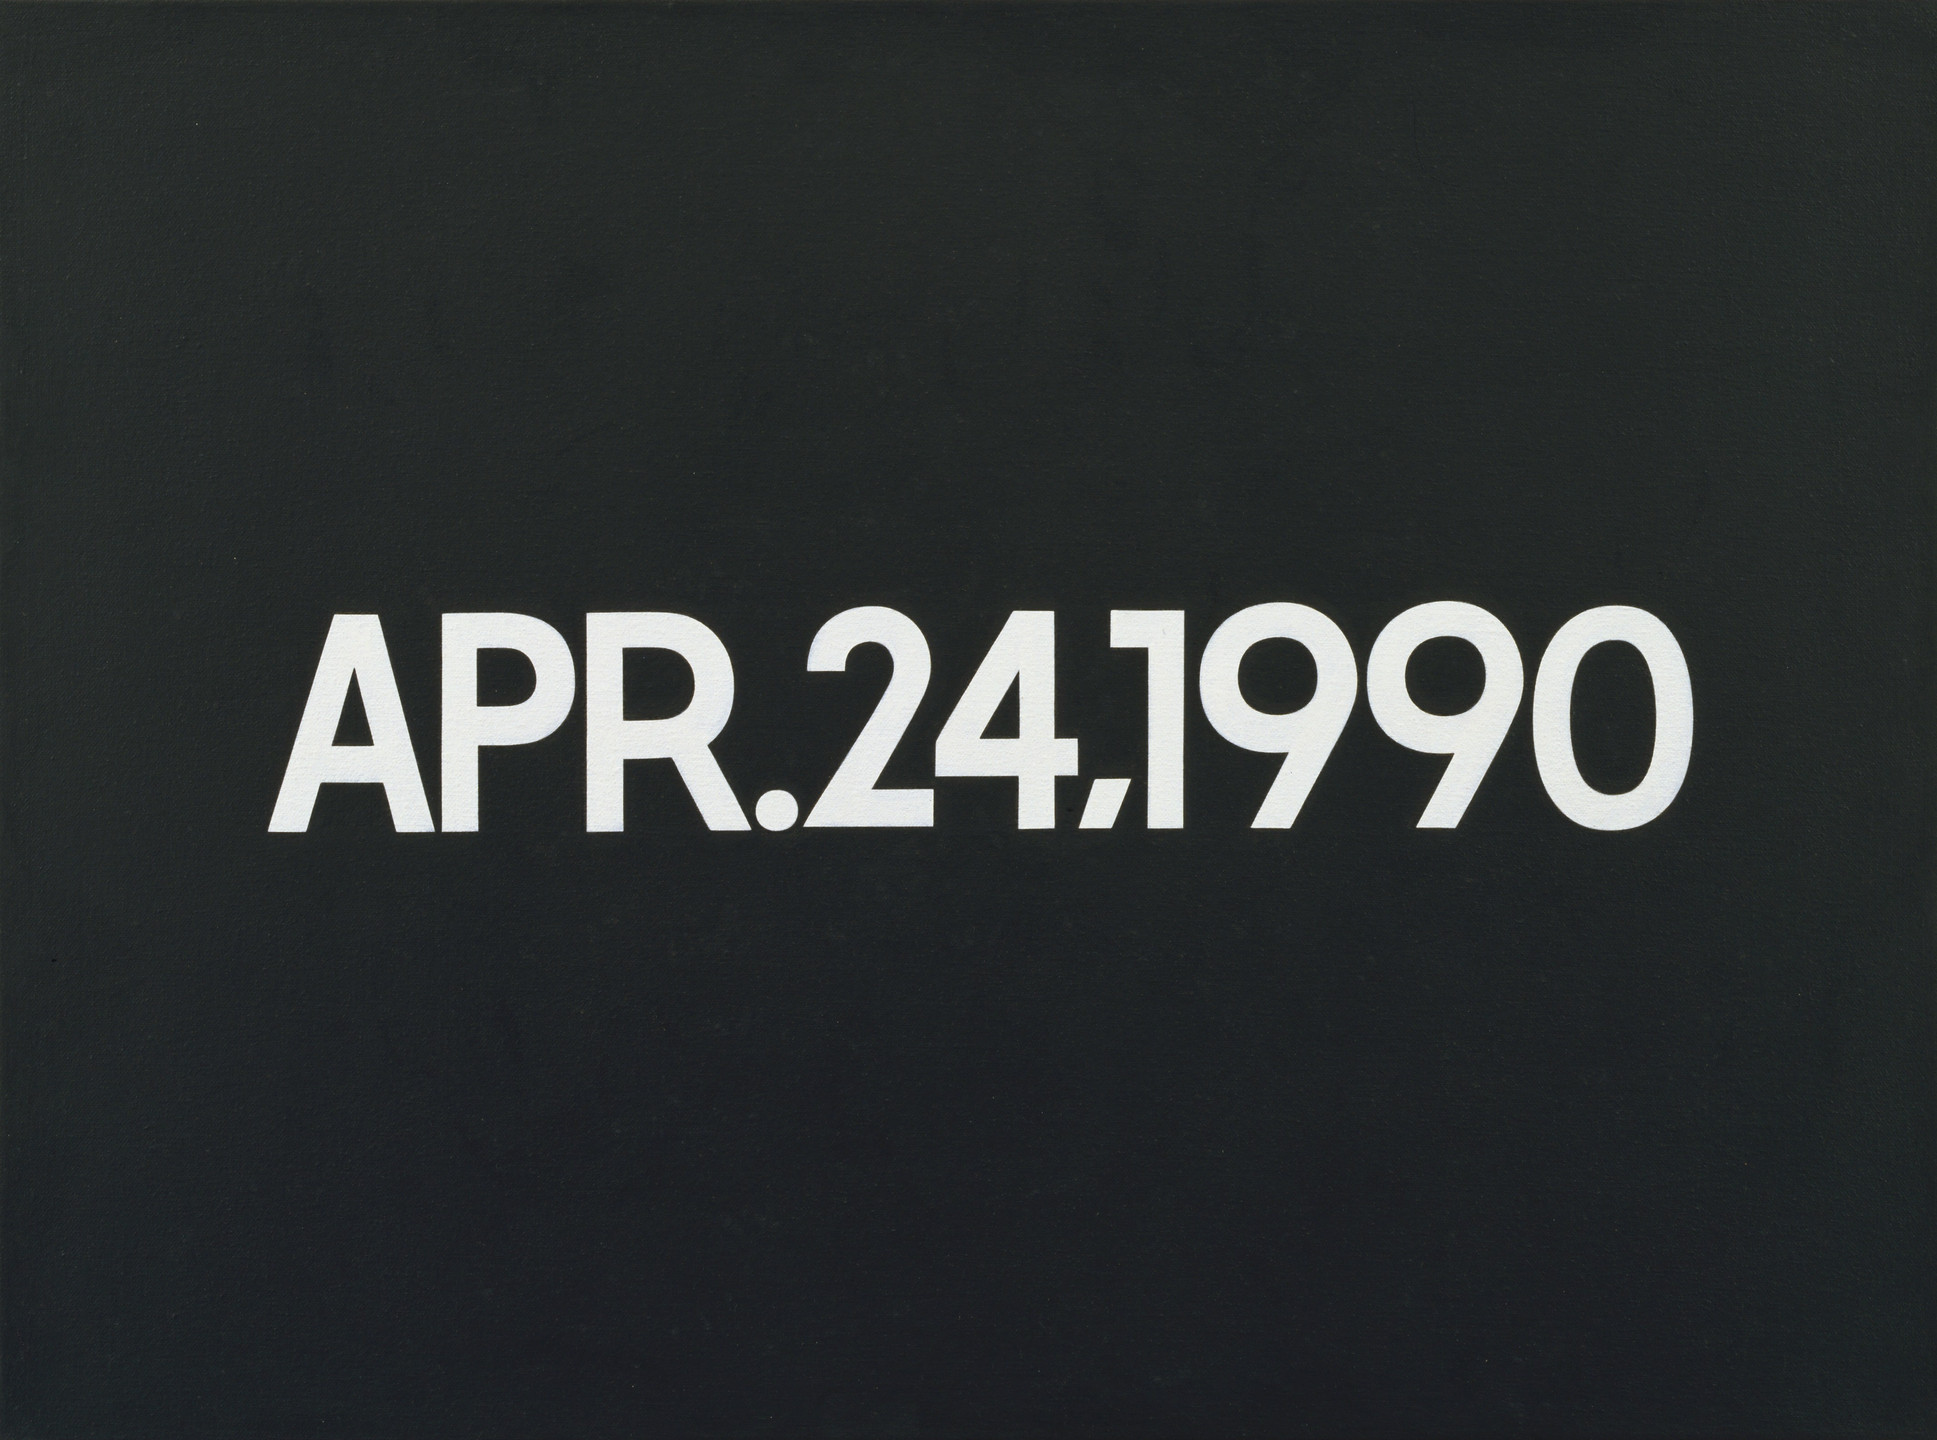 On Kawara. APR. 24, 1990. 1990